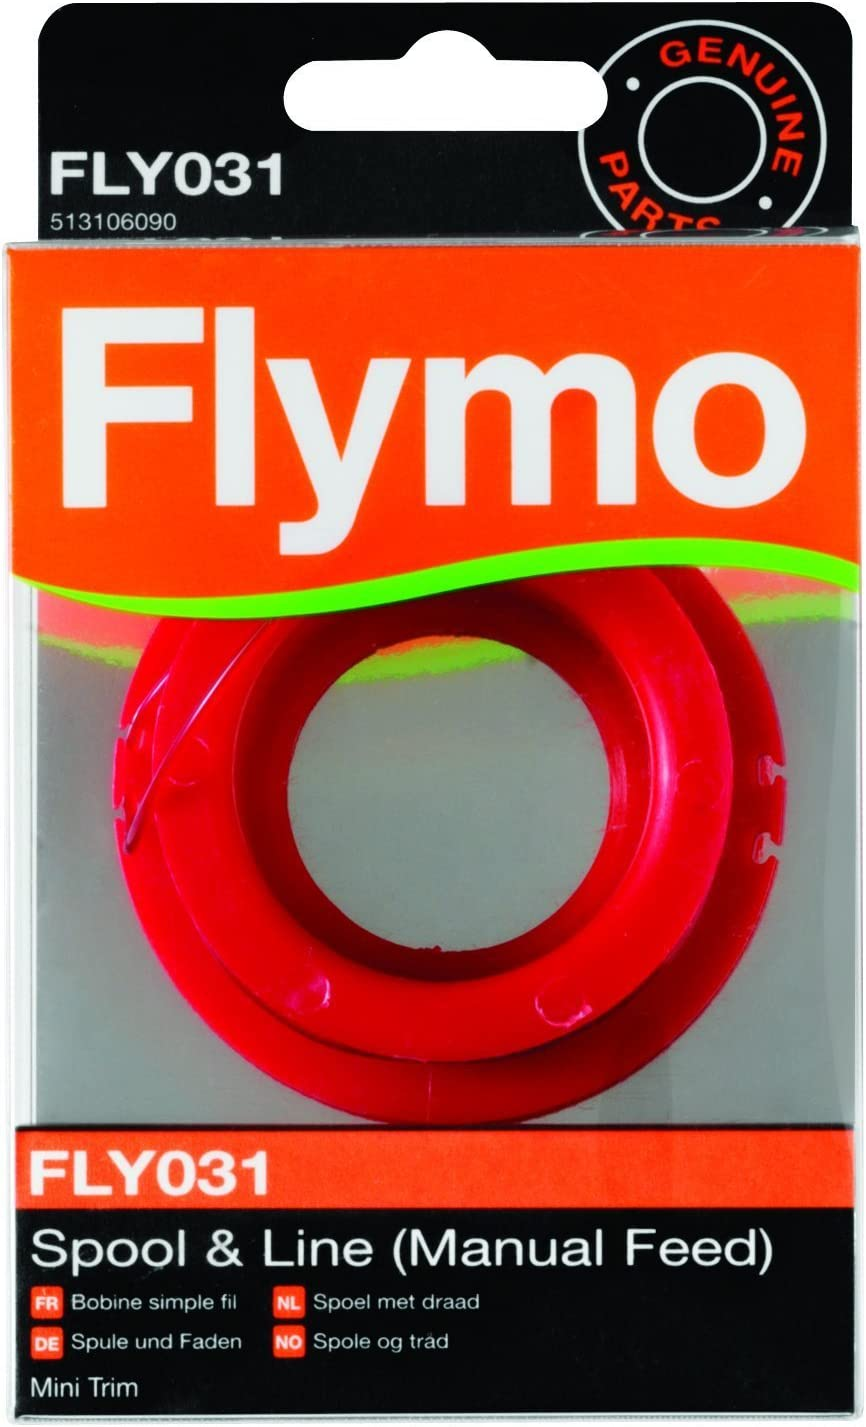 ALM FL031 Replacement Spool /& Line for Flymo Mini Trim ST FLY031 Grass Trimmer